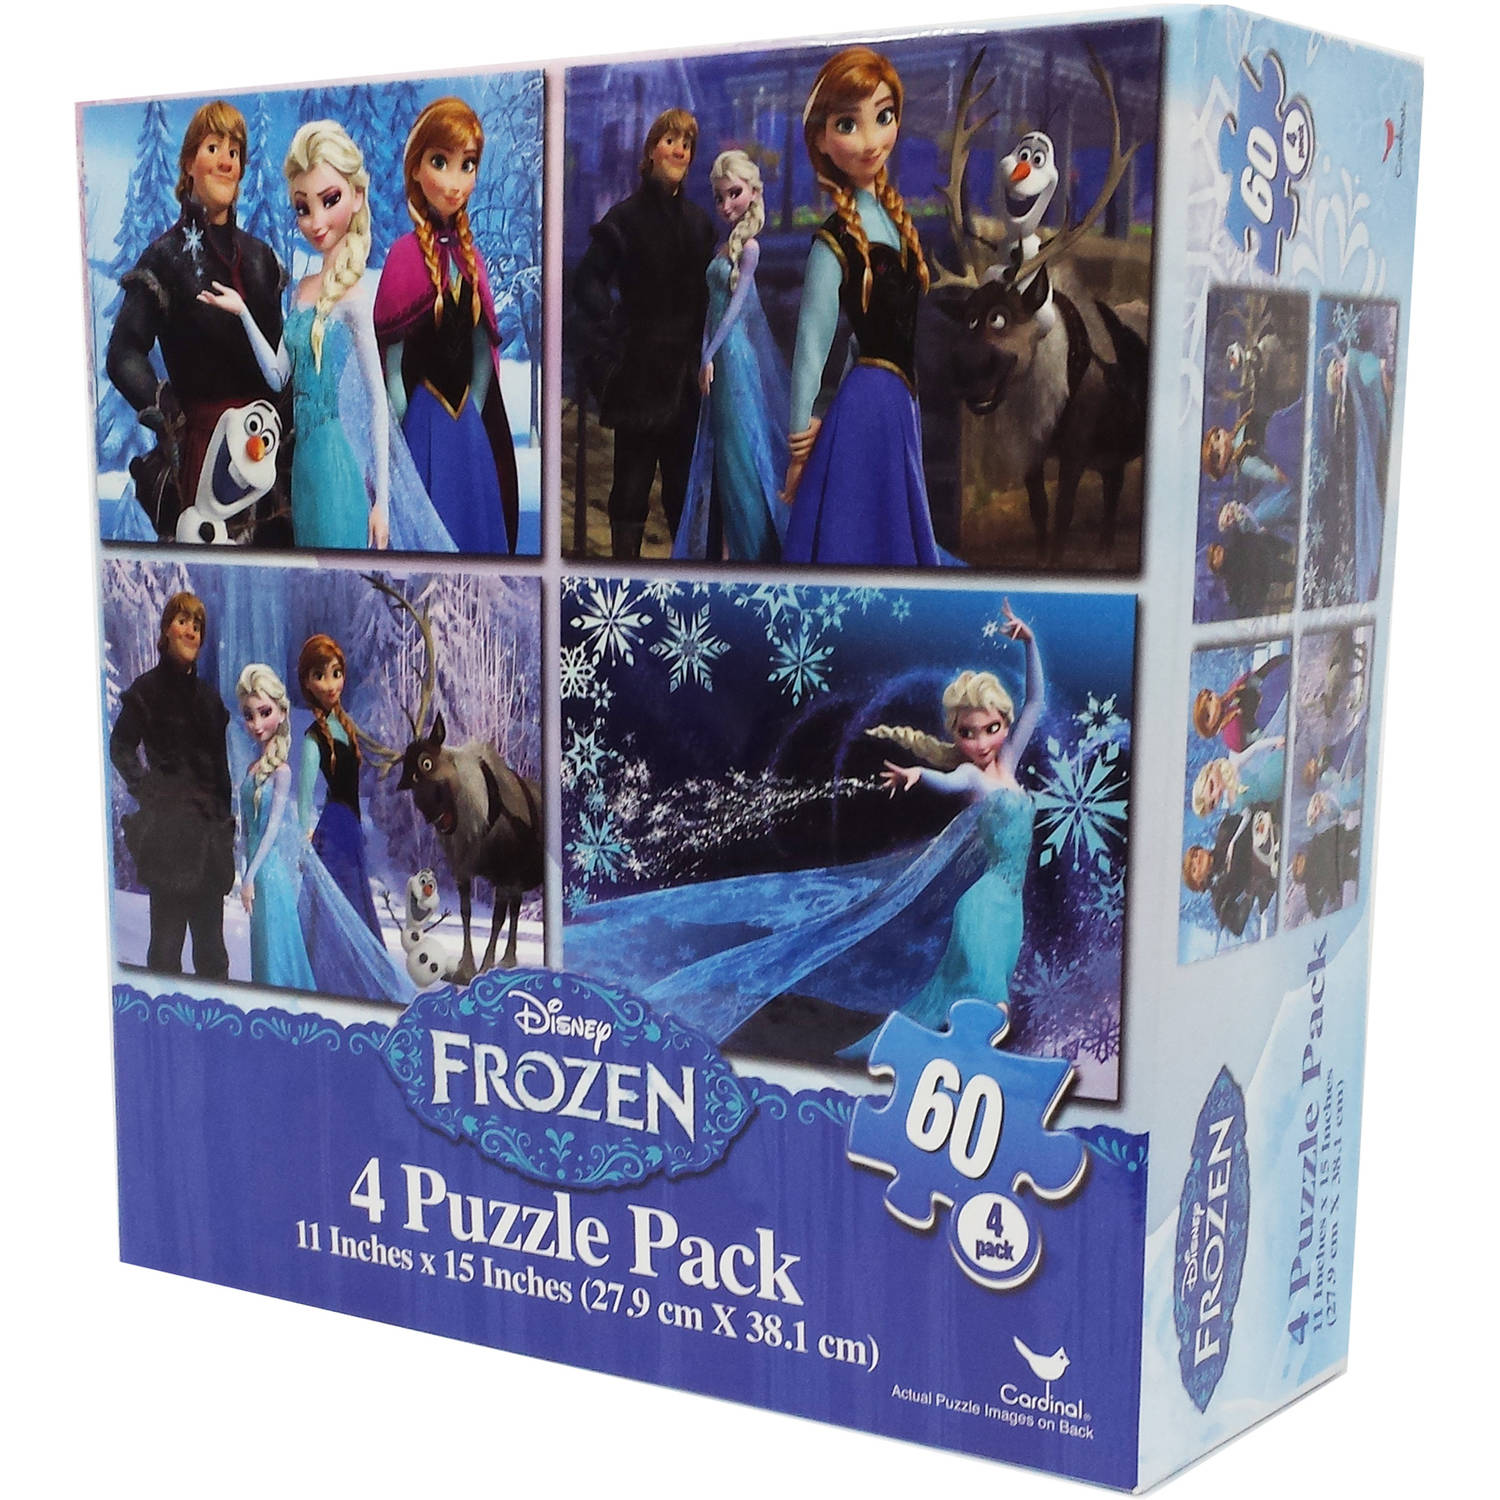 Disney Frozen 4 Basic Puzzle Box With Rope Handle by Cardinal Games